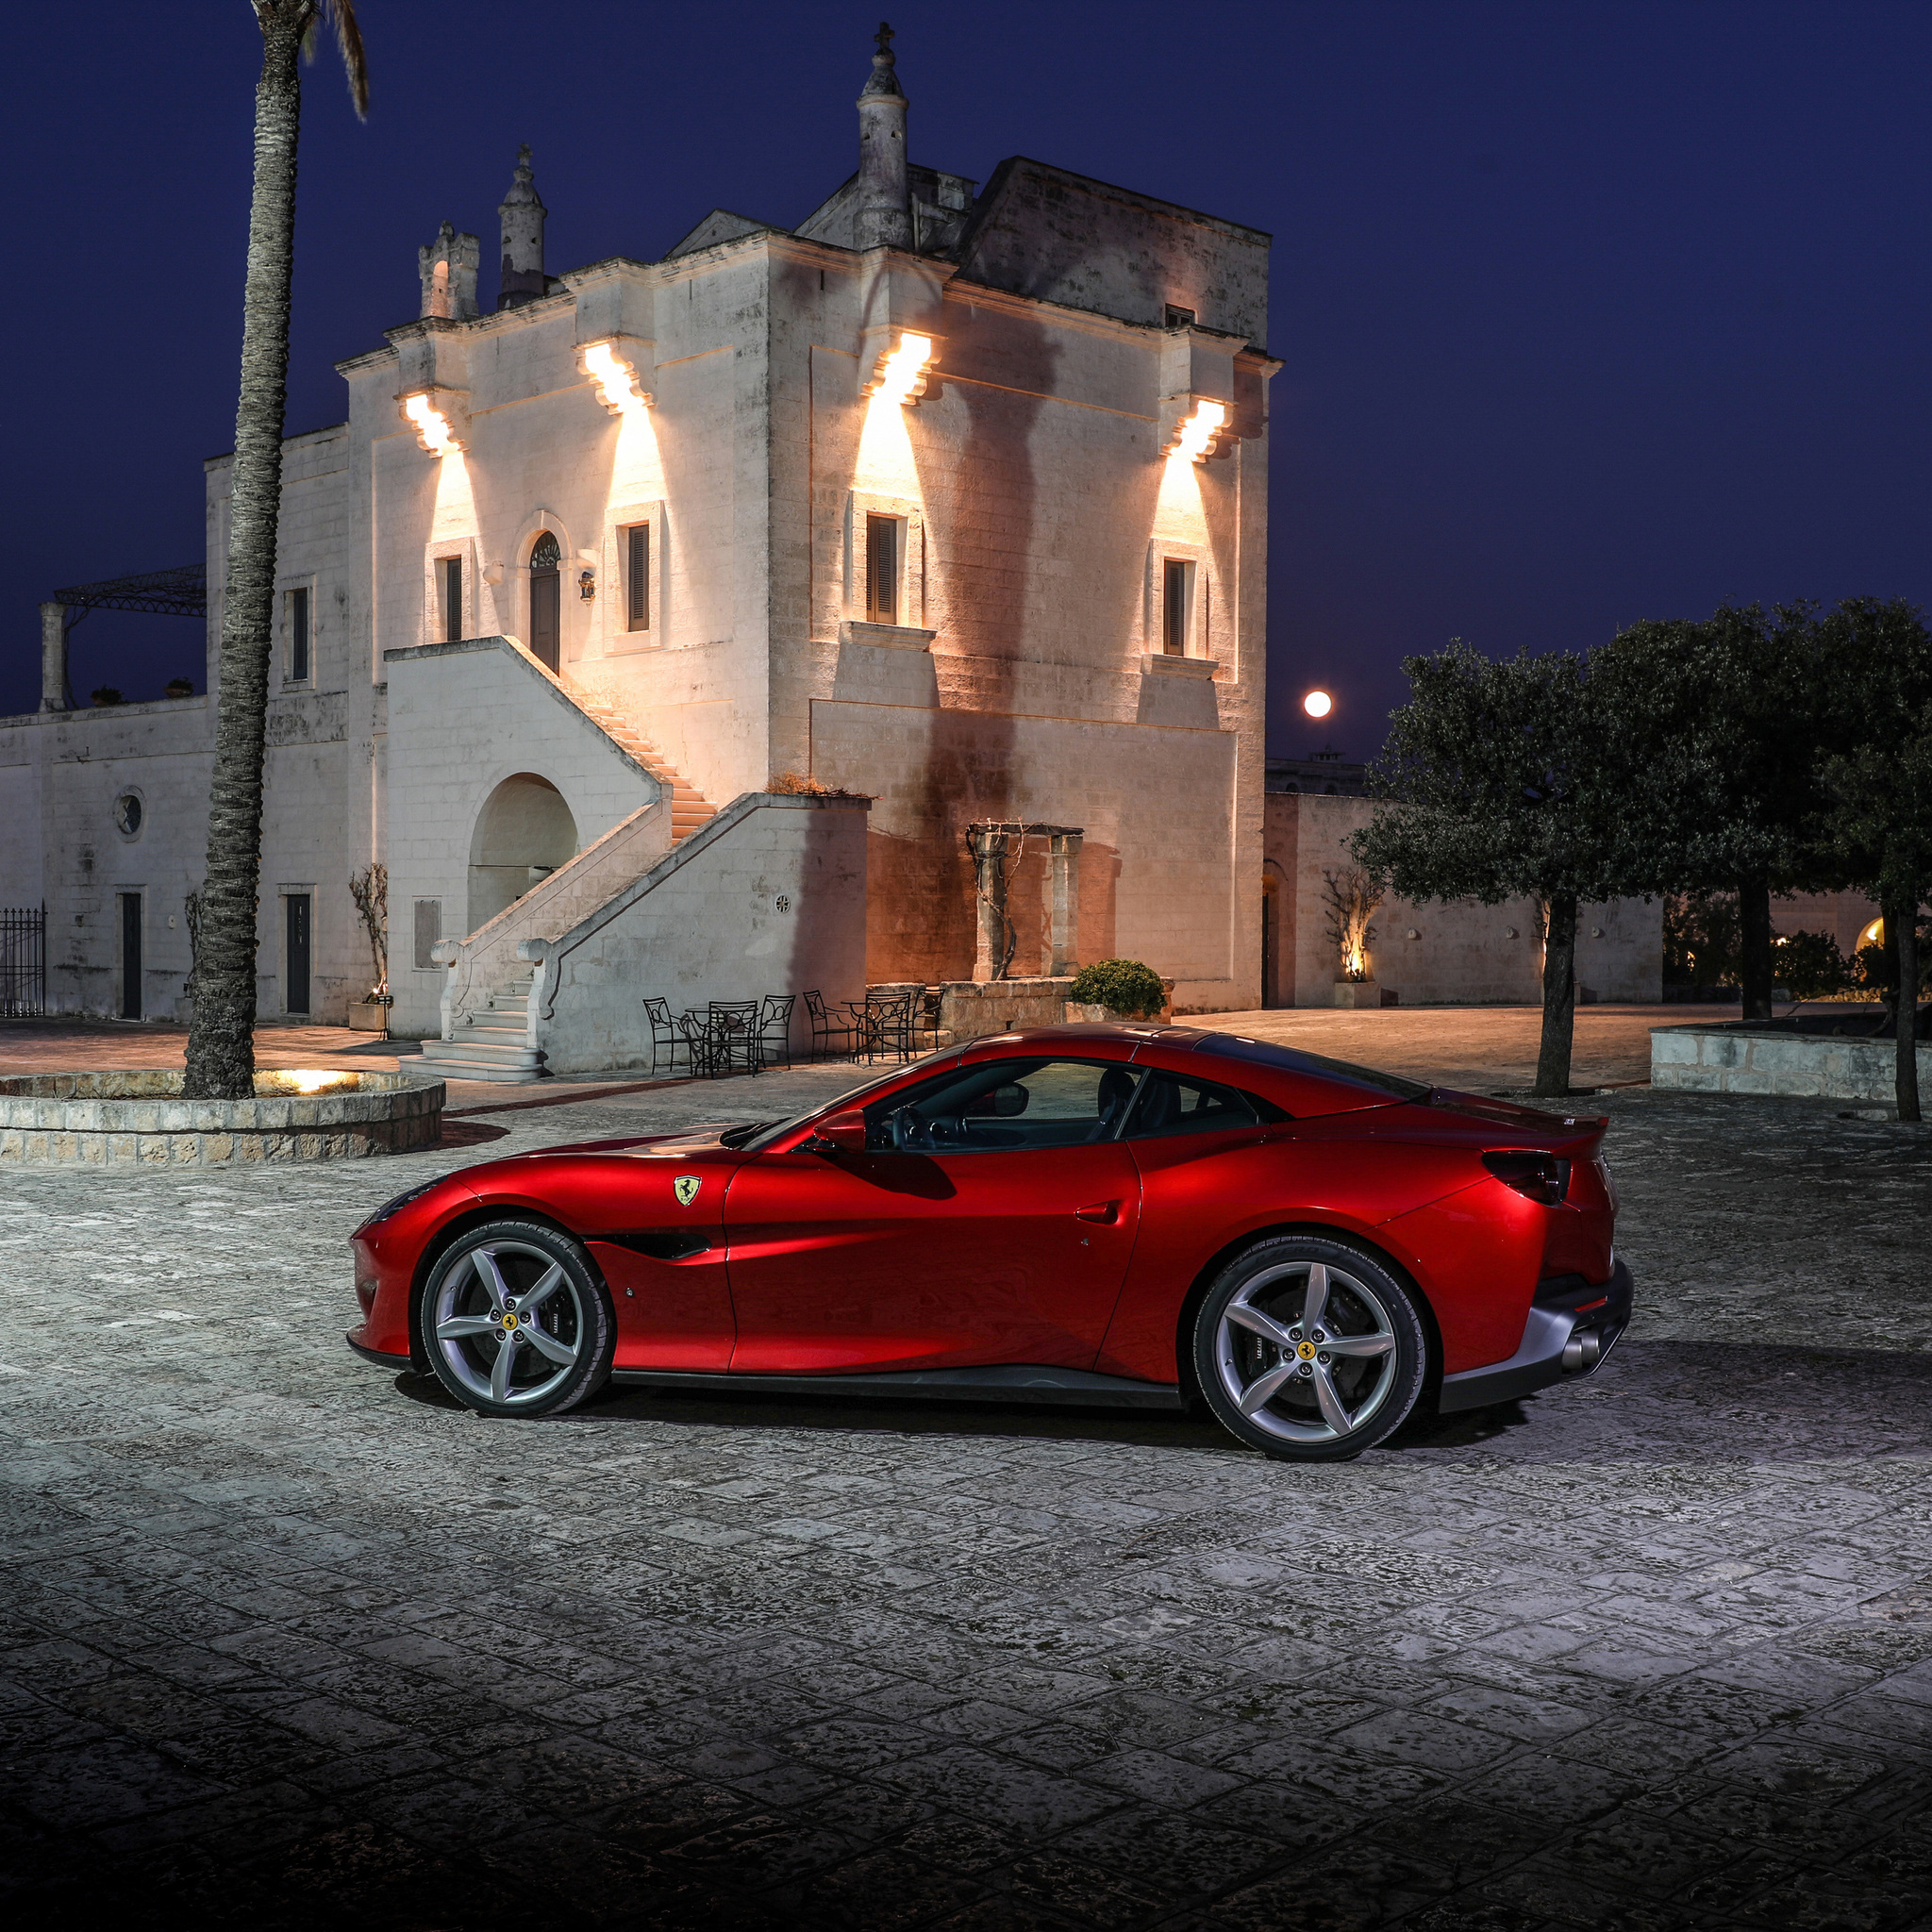 2048x2048 2018 Ferrari Portofino 4k Ipad Air HD 4k